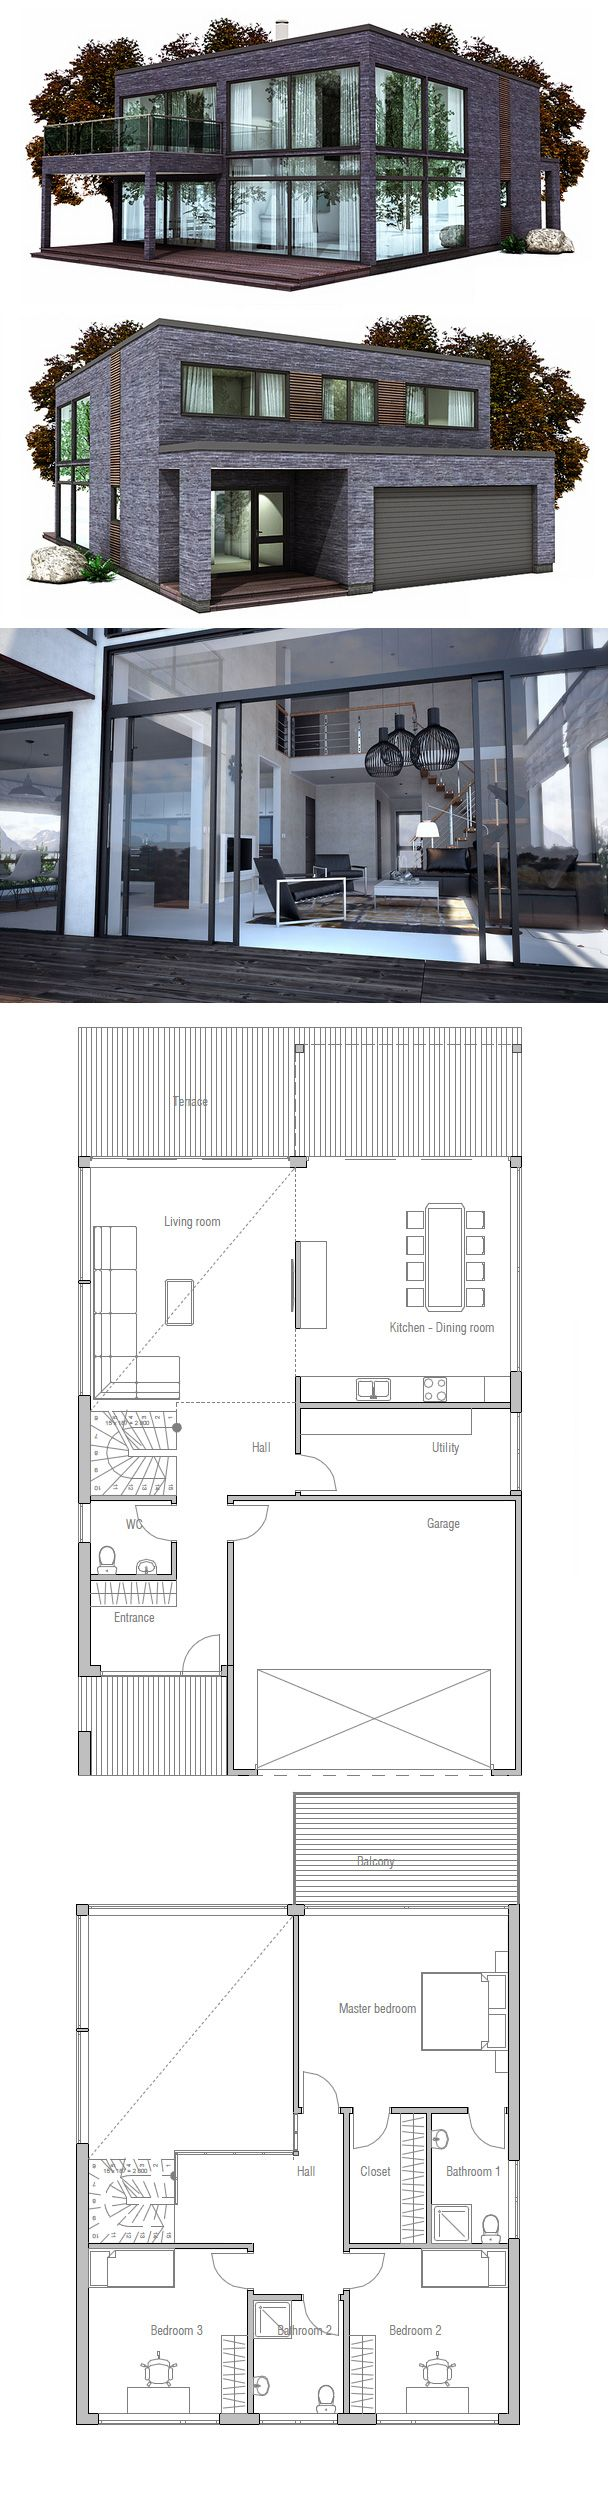 Minimalist House Design Plans best 25+ modern minimalist house ideas on pinterest | minimalist